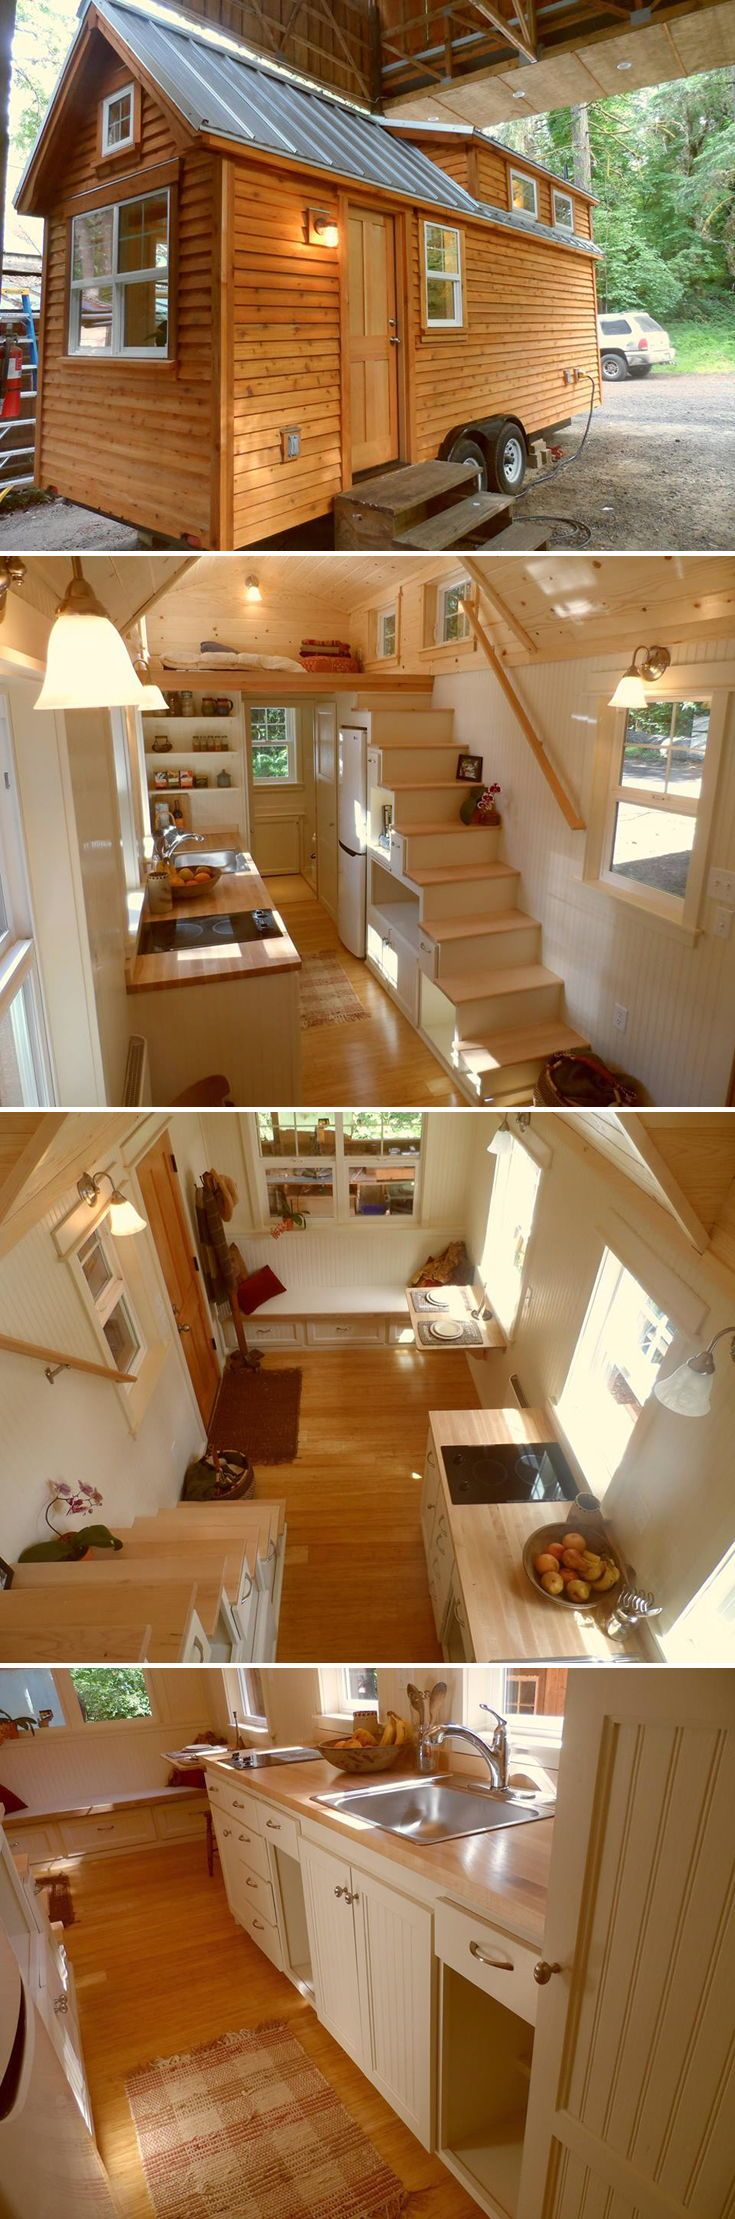 The Oregon Cottage Company created this customized Ynez model for a client along the Oregon coast. The 22′ tiny house features tansu storage stairs with maple treads, bamboo flooring, and bead board wall paneling.